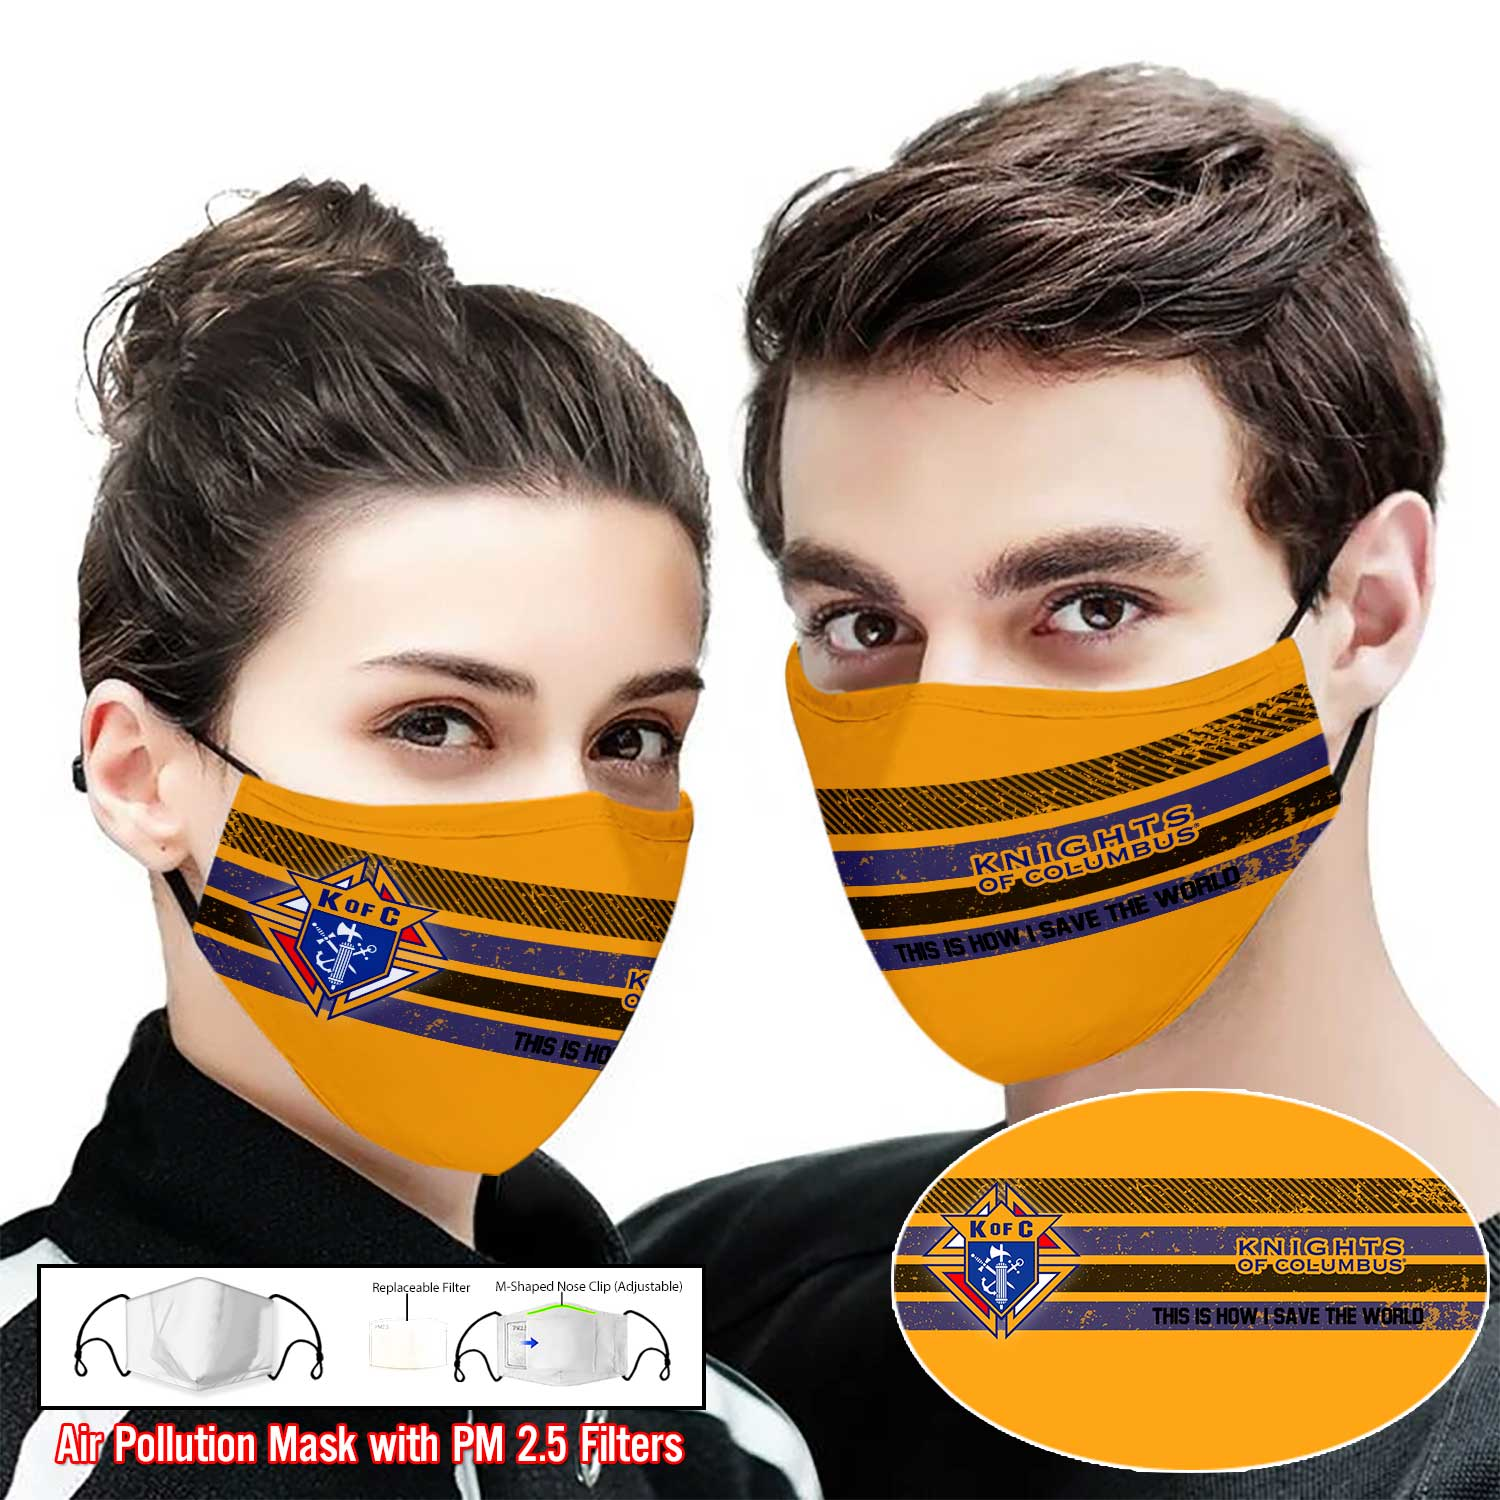 Knights of columbus this is how i save the world full printing face mask 2